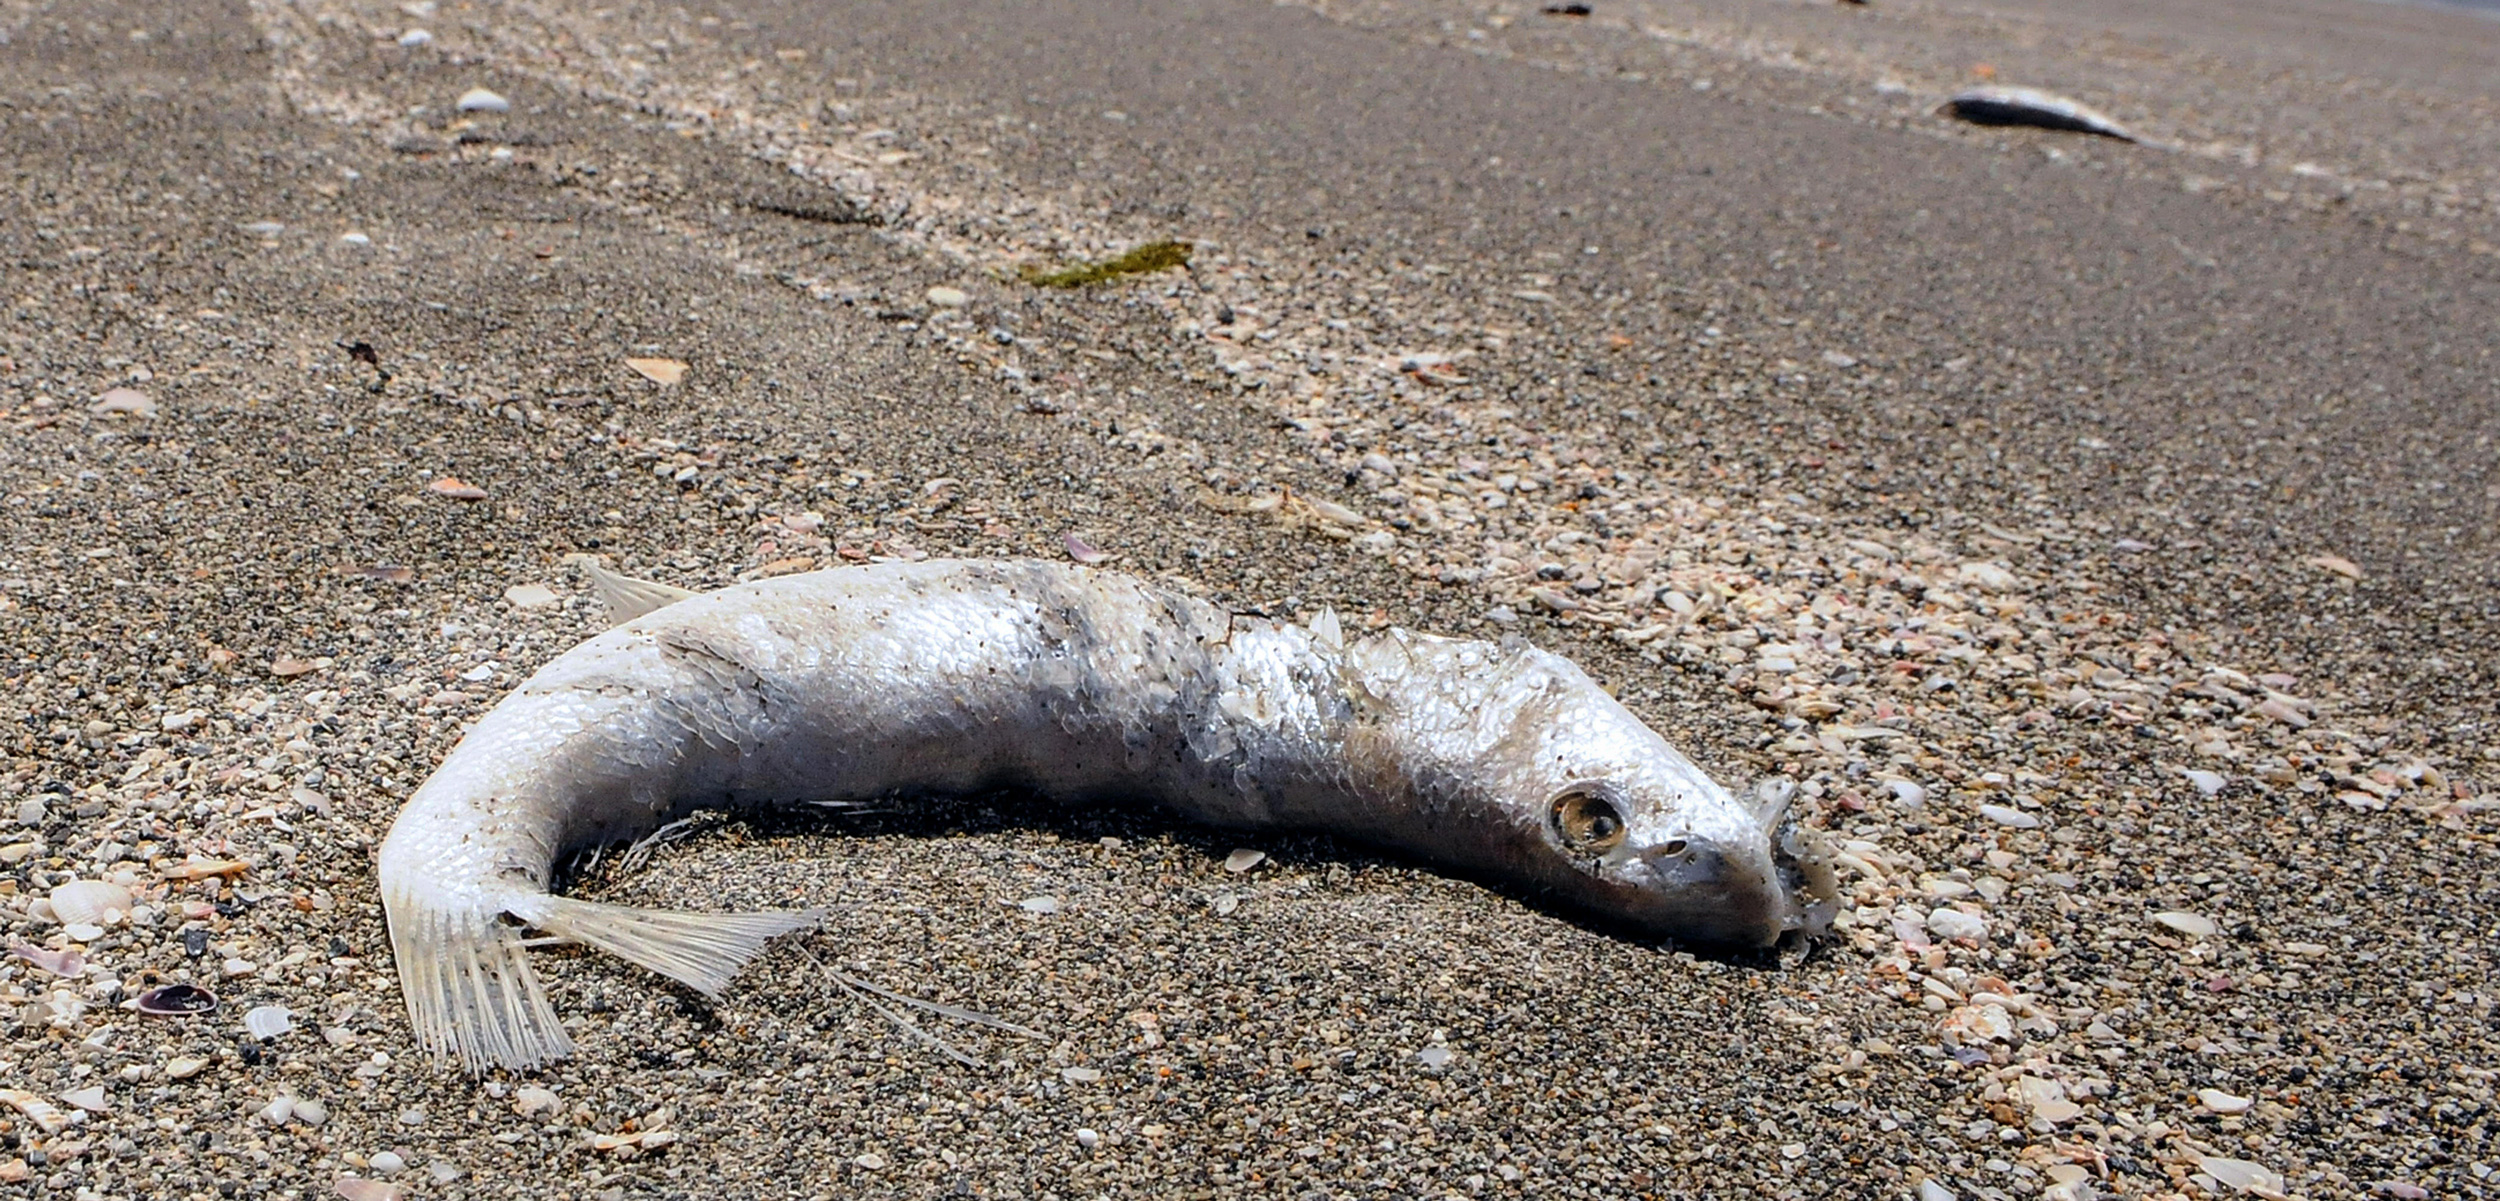 dead fish on beach due to red tide